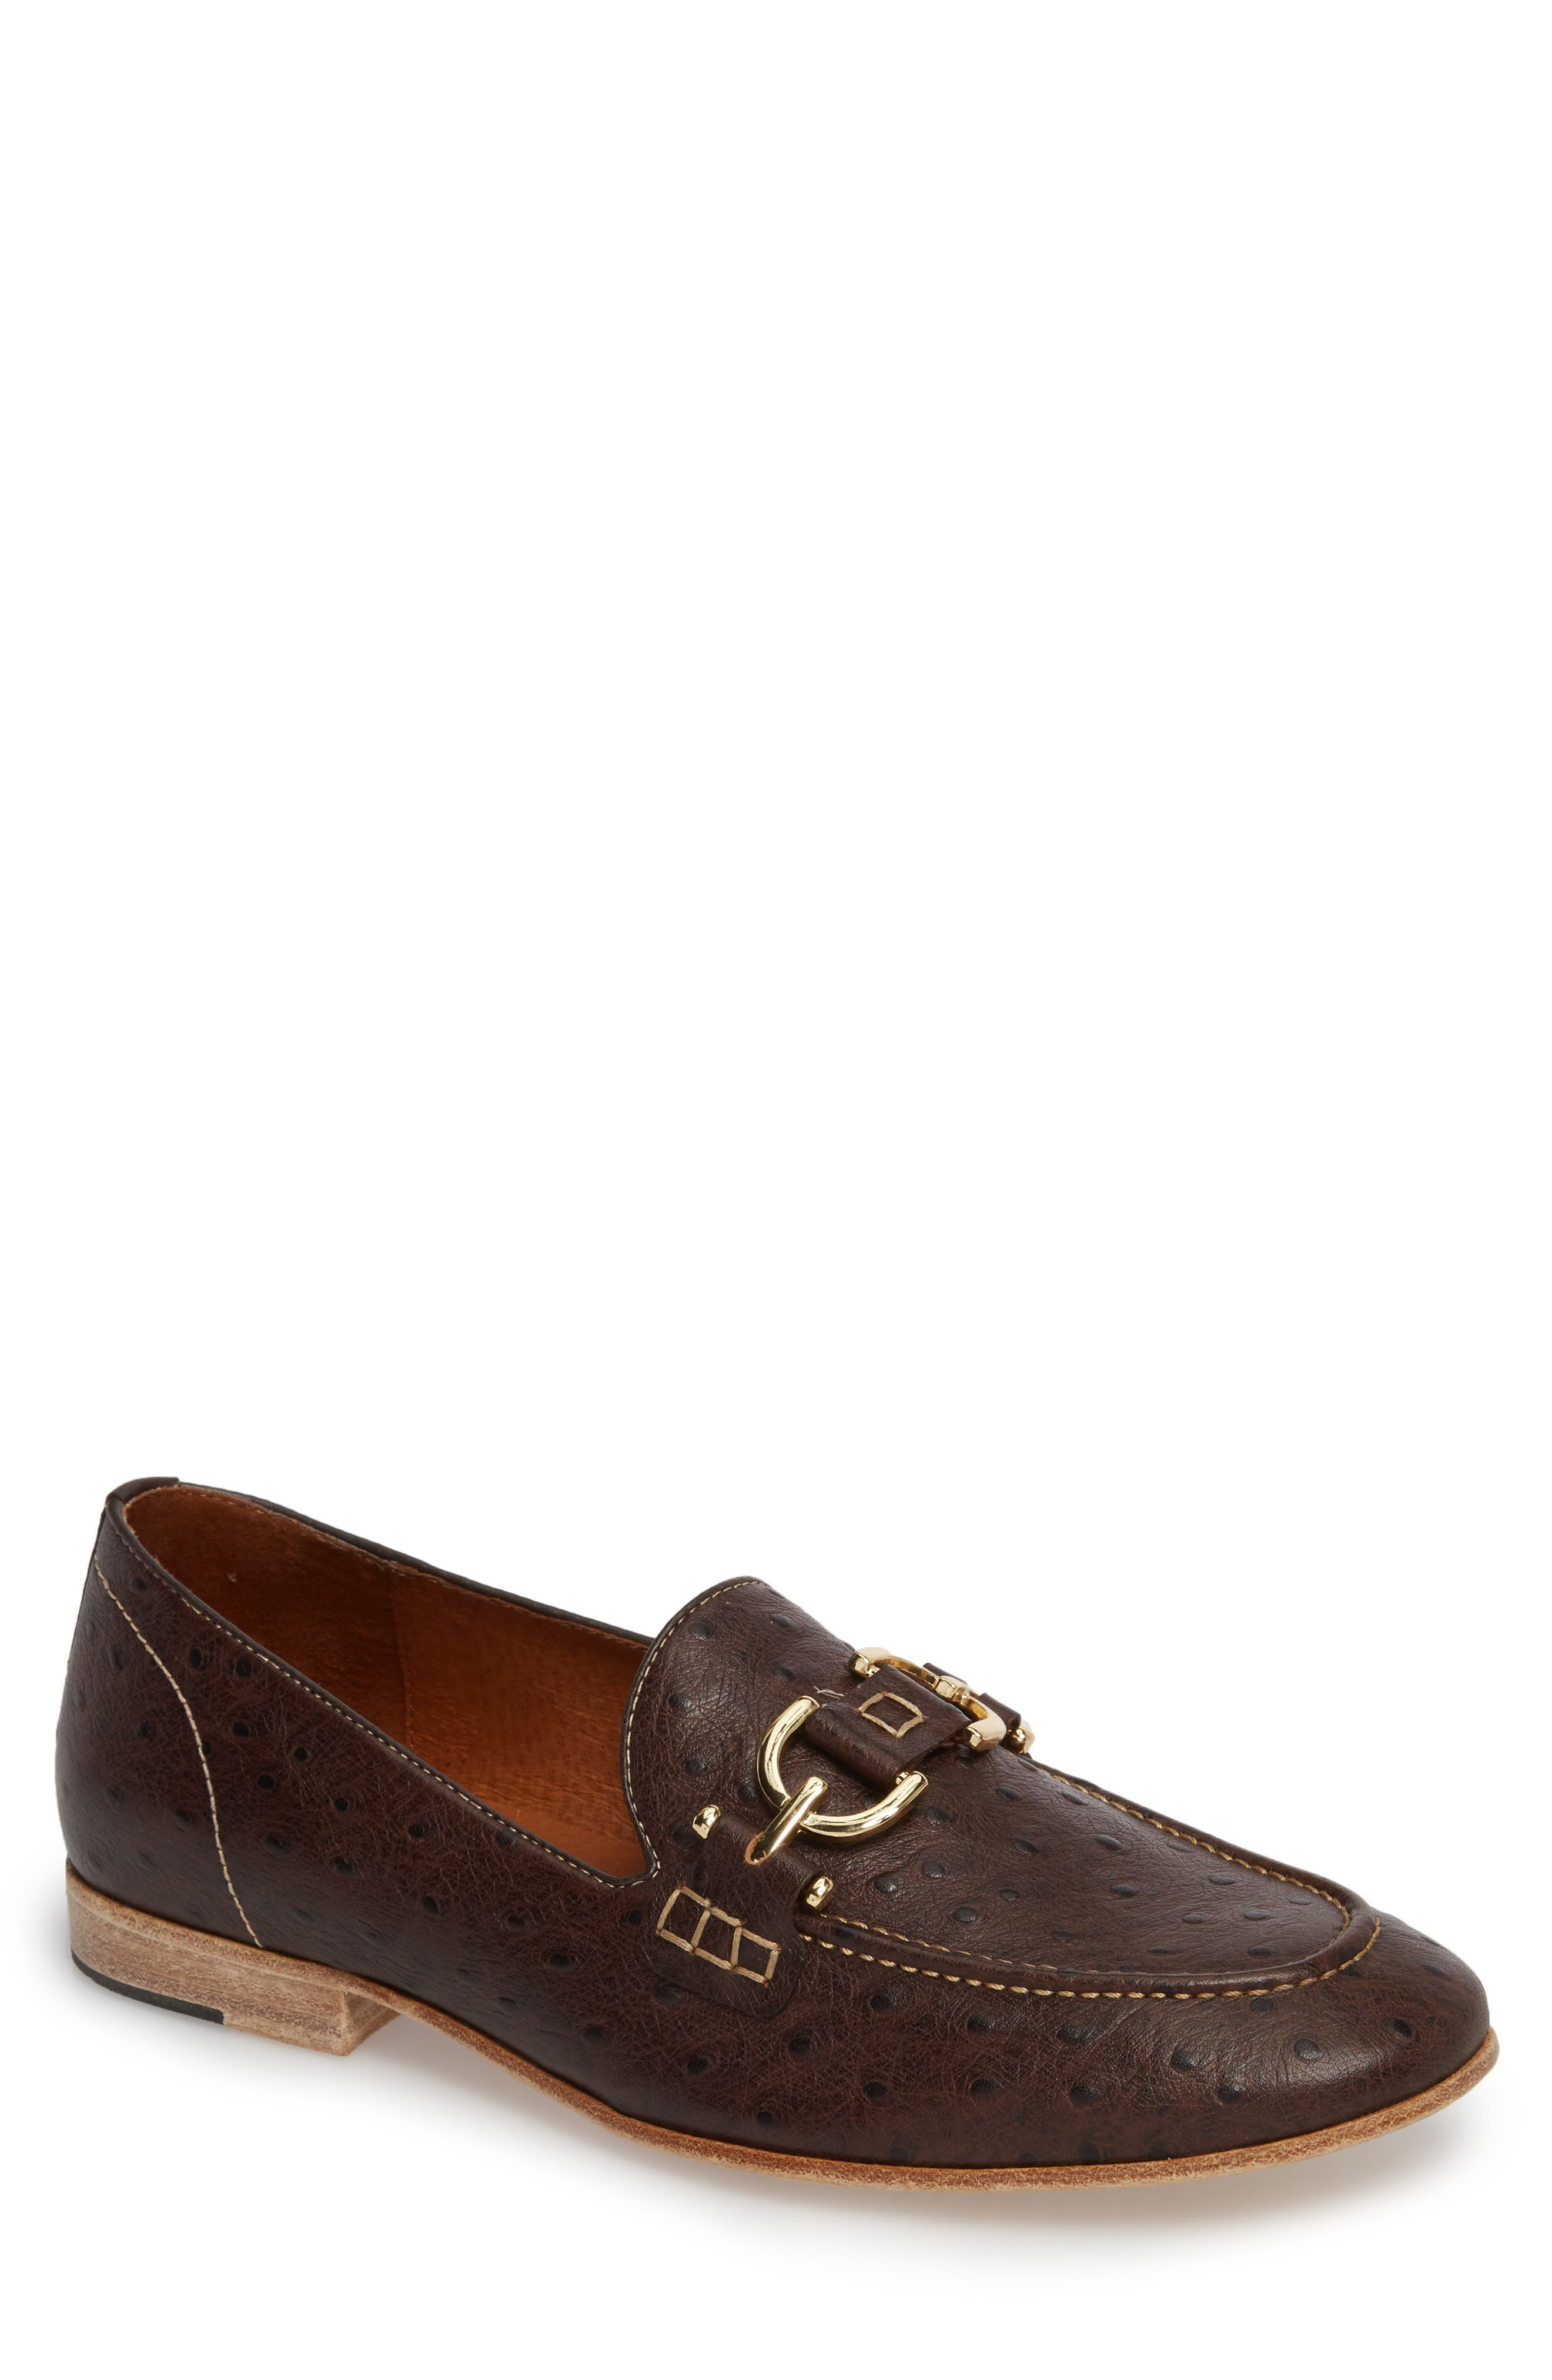 Moritz Apron Toe Bit Loafer,                         Main,                         color, 200